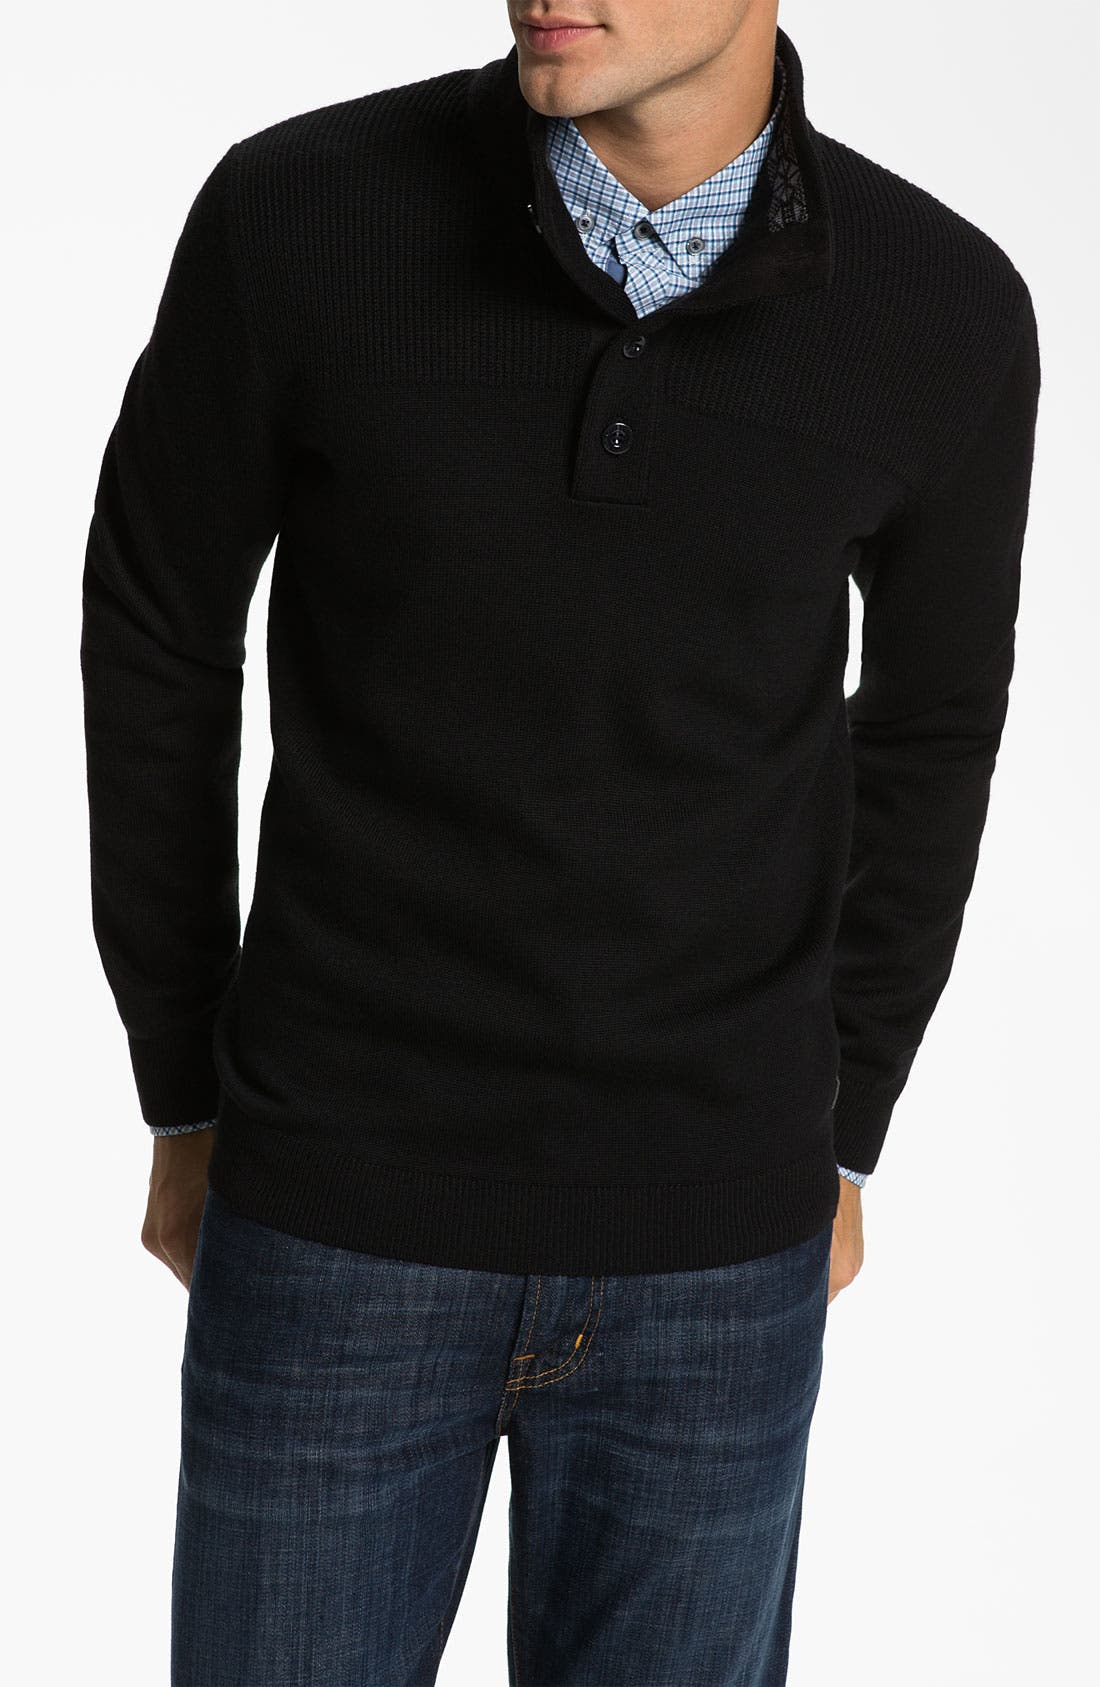 Main Image - BOSS Black 'Lancelot' Slim Fit Mock Neck Wool Sweater